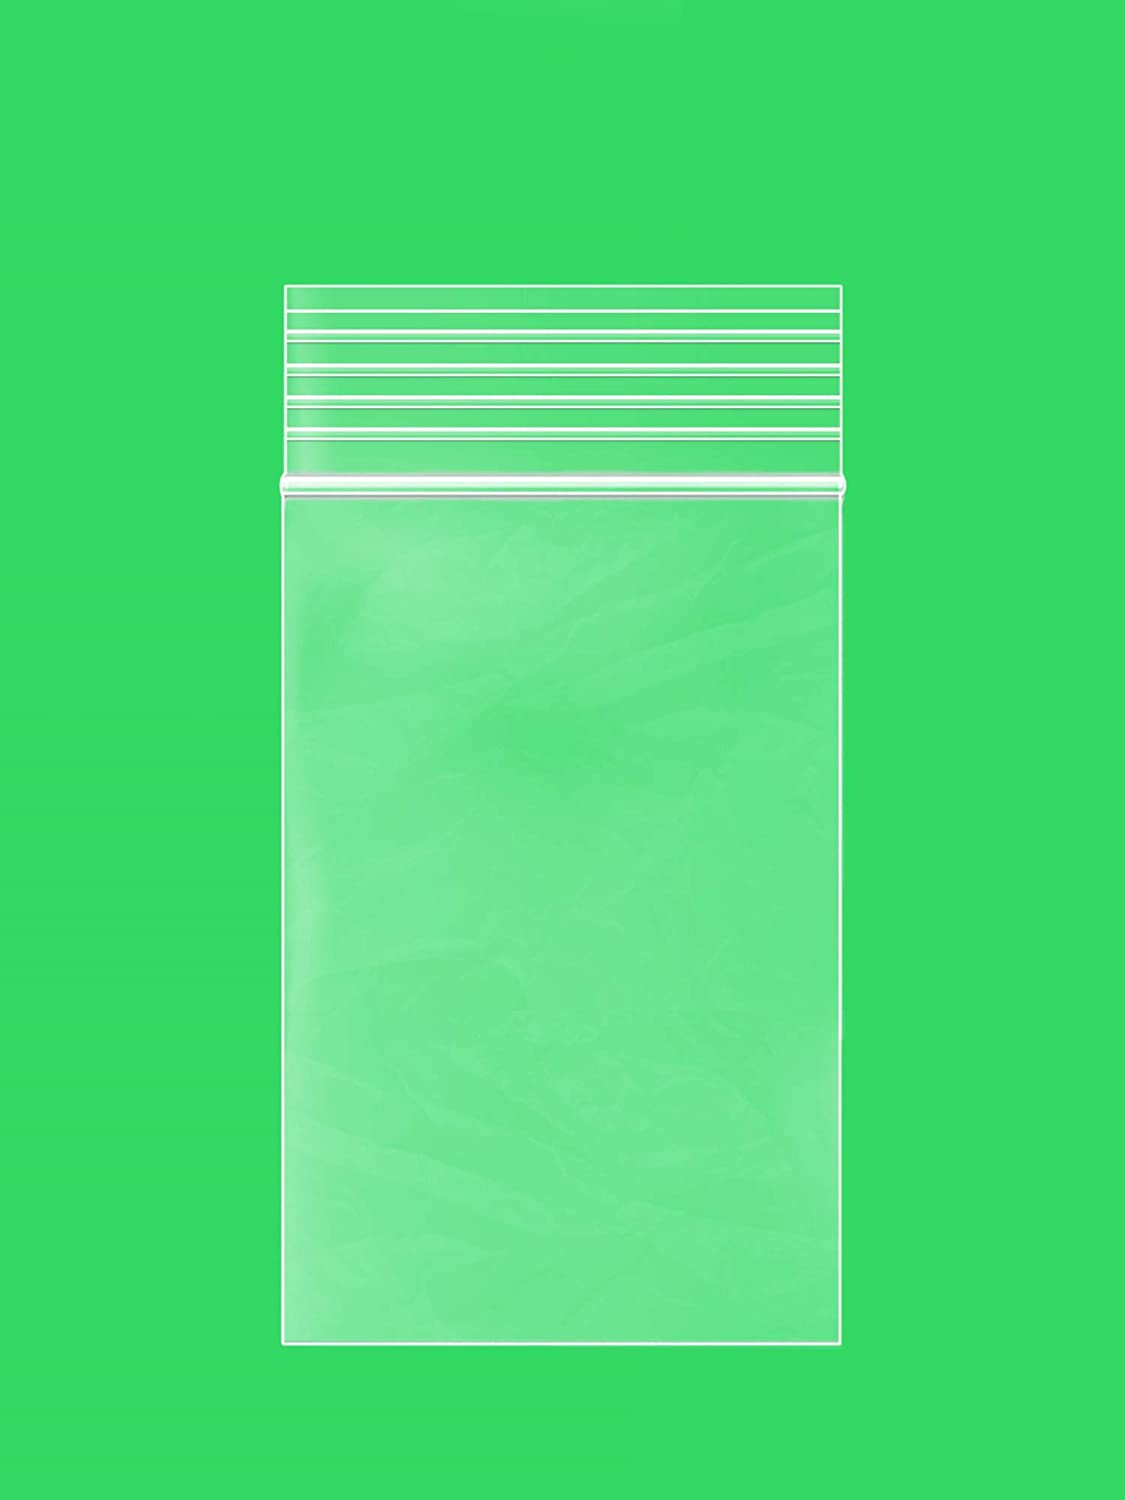 2 x 2 P020202WR1000 2 mil RetailSource P020202WR1001 Block Reclosable Poly Bags Clear 2 x 2 Pack of 1000